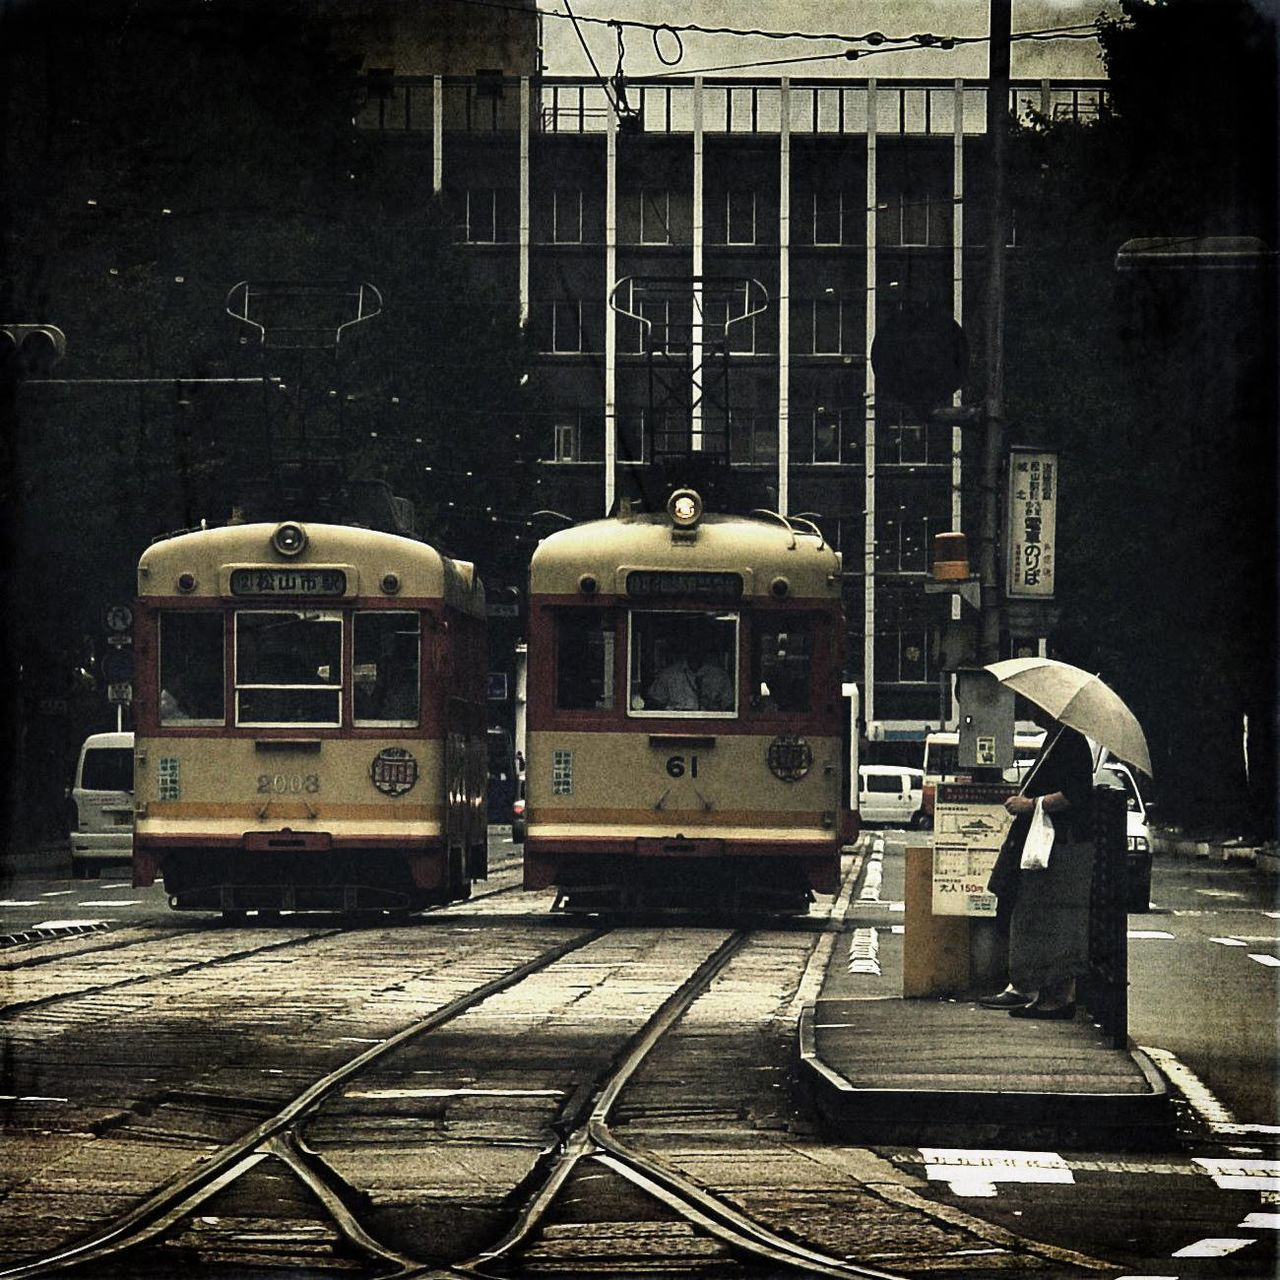 Old-Fashioned Trams On City Street